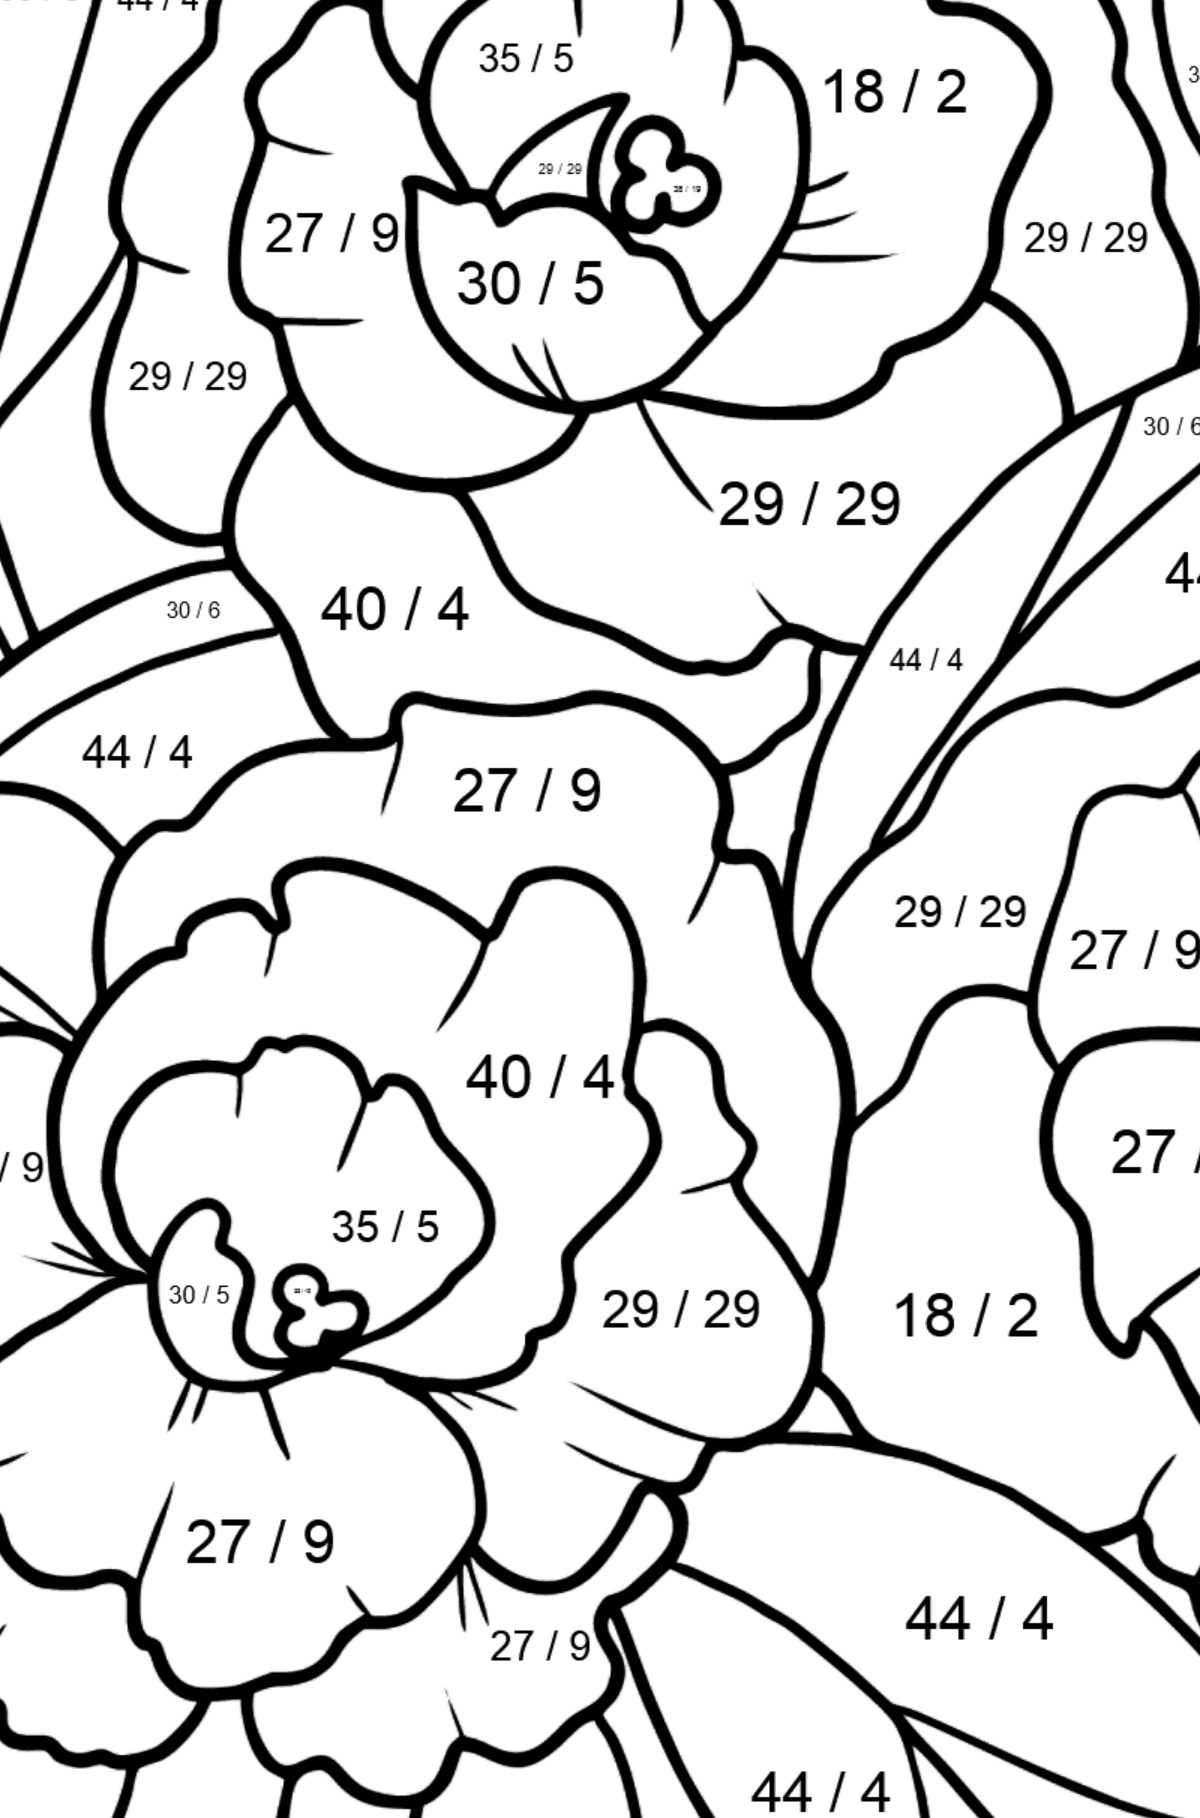 Flower Coloring Page - A Peony Blossom - Math Coloring - Division for Kids